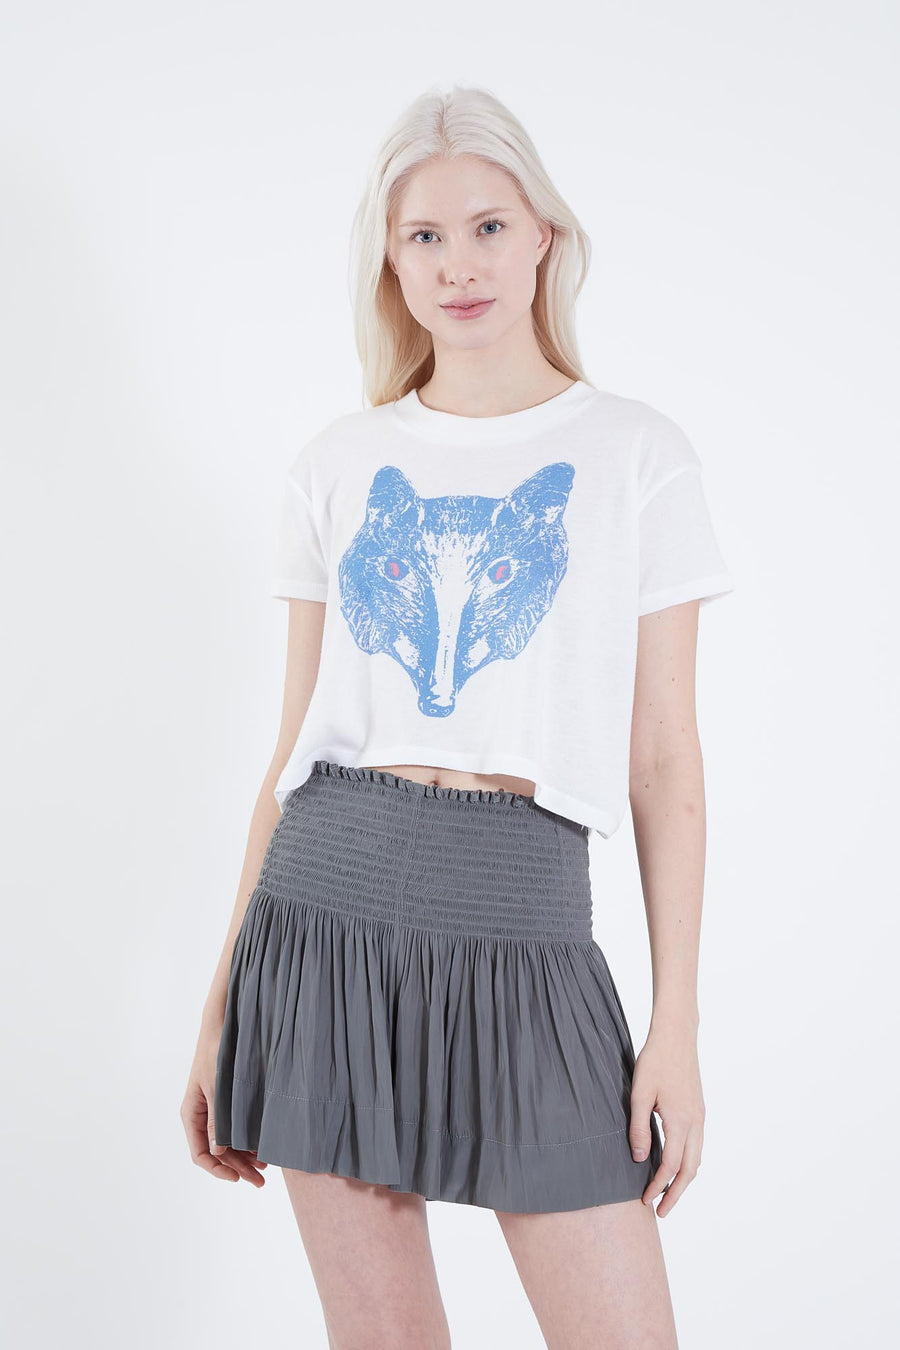 FOX CROP TOP *LIMITED*EDITION*